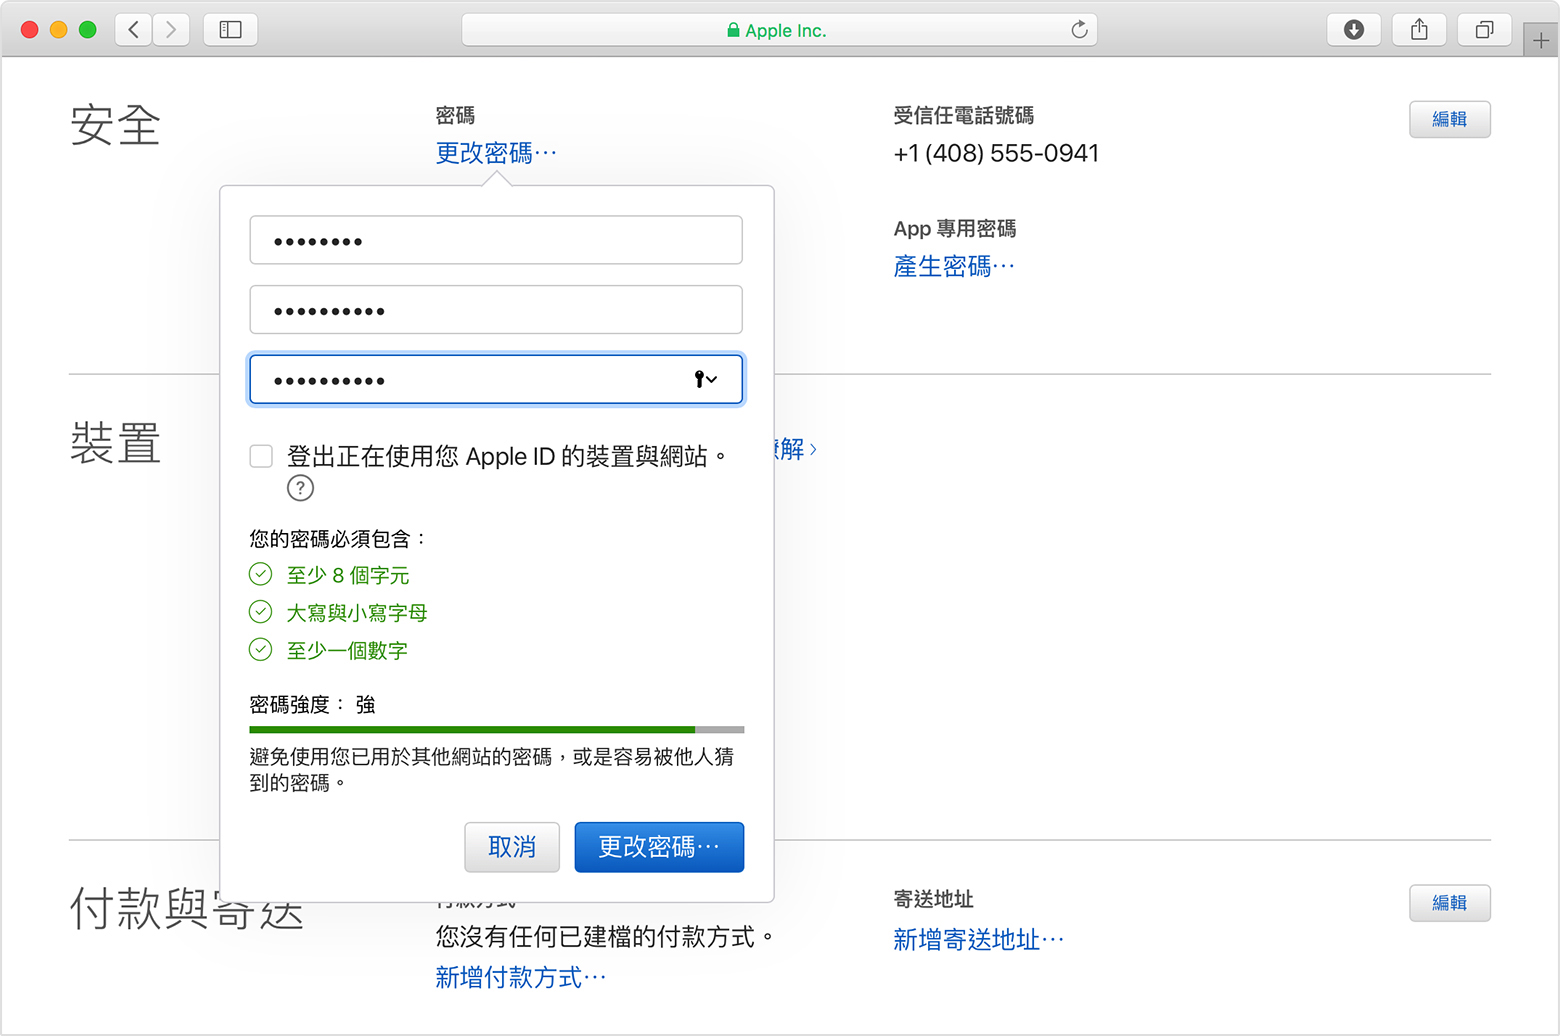 安全性與 Apple ID - Apple 支援